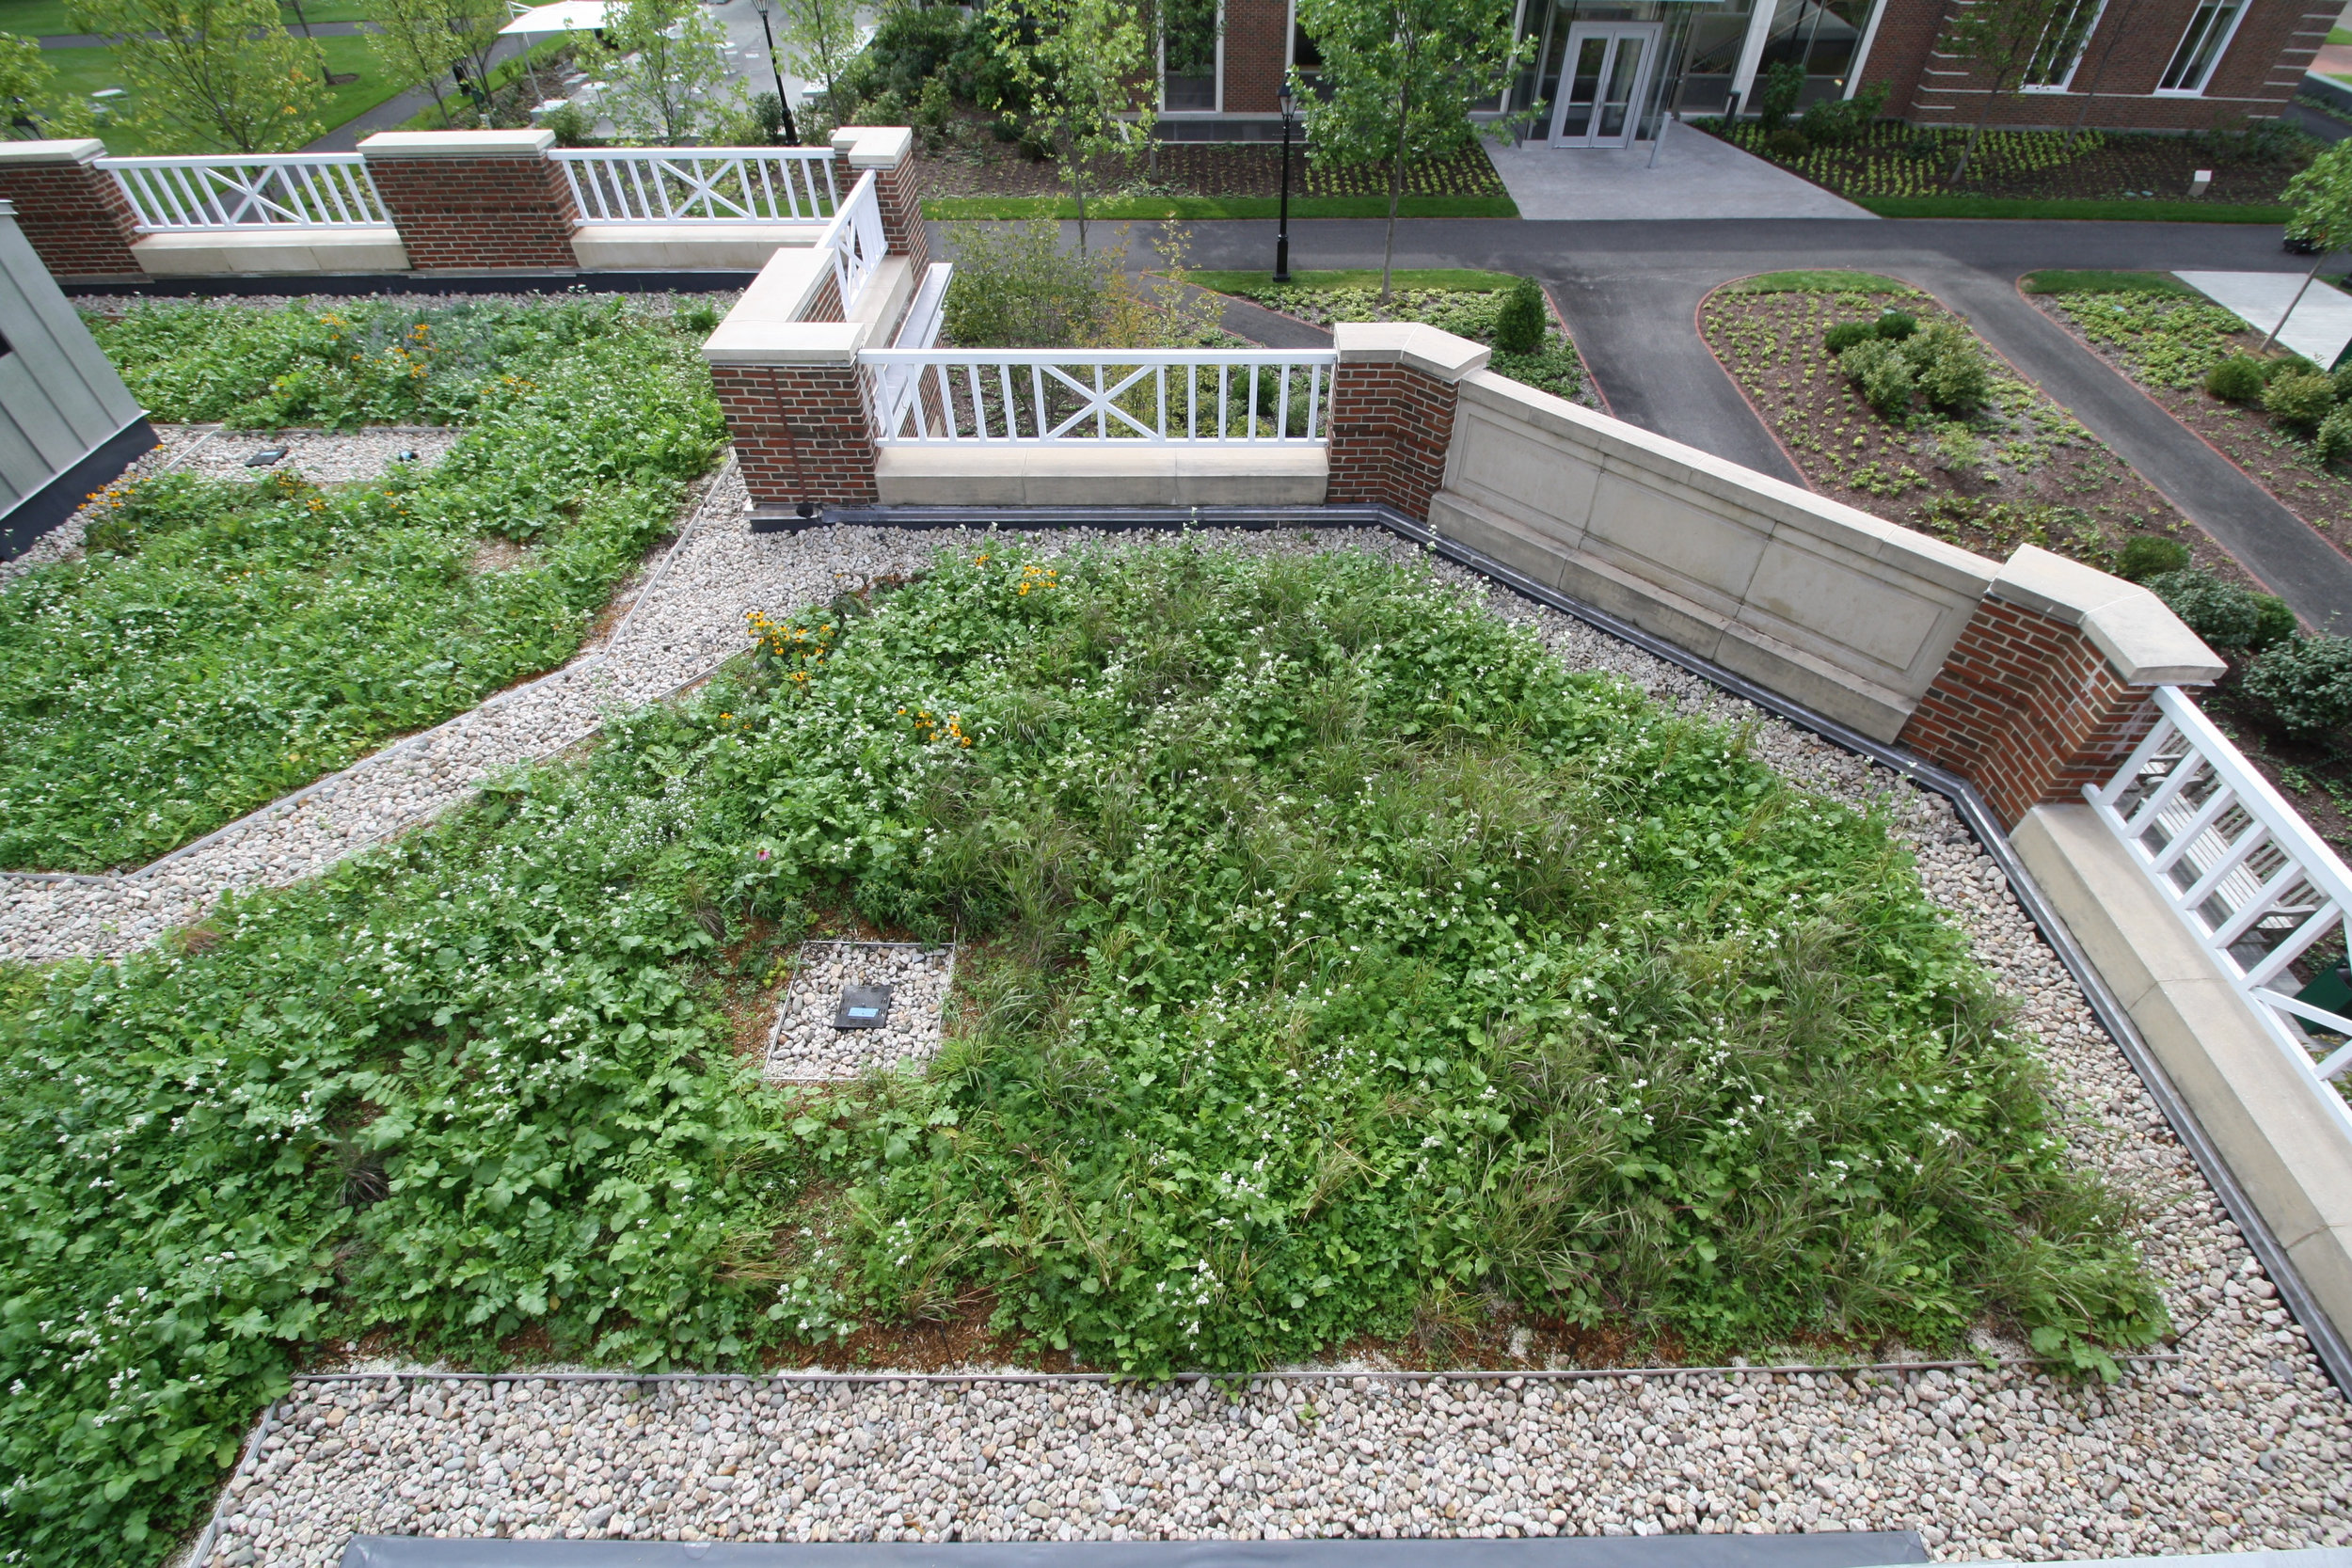 recover-green-roofs-harvard-business-school-garden-2017-9.jpg